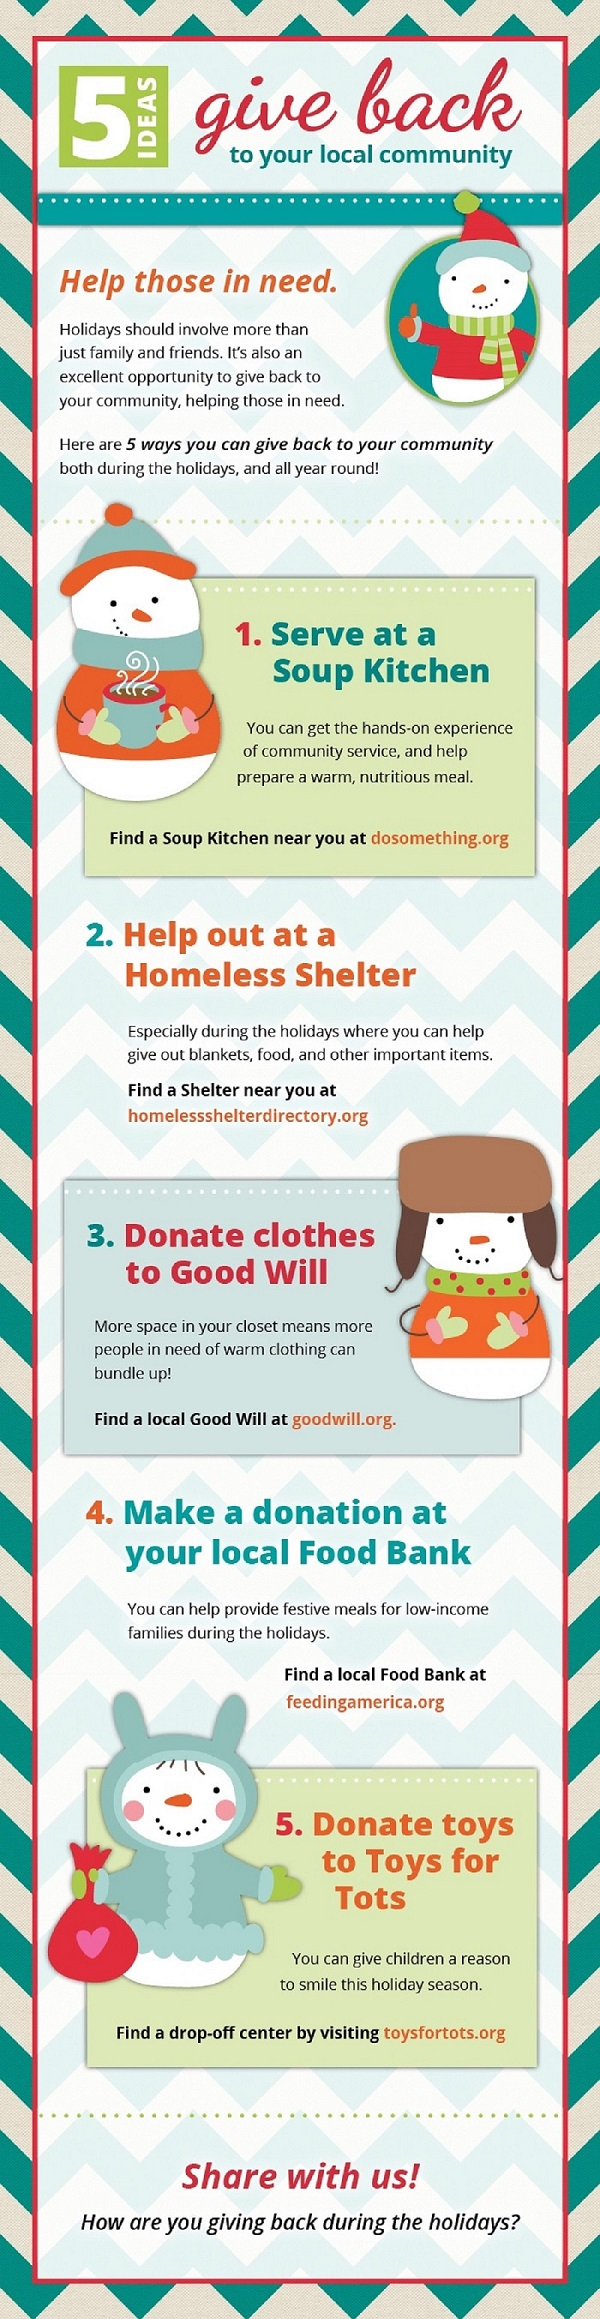 Infographic on 5 ways to give back to your community